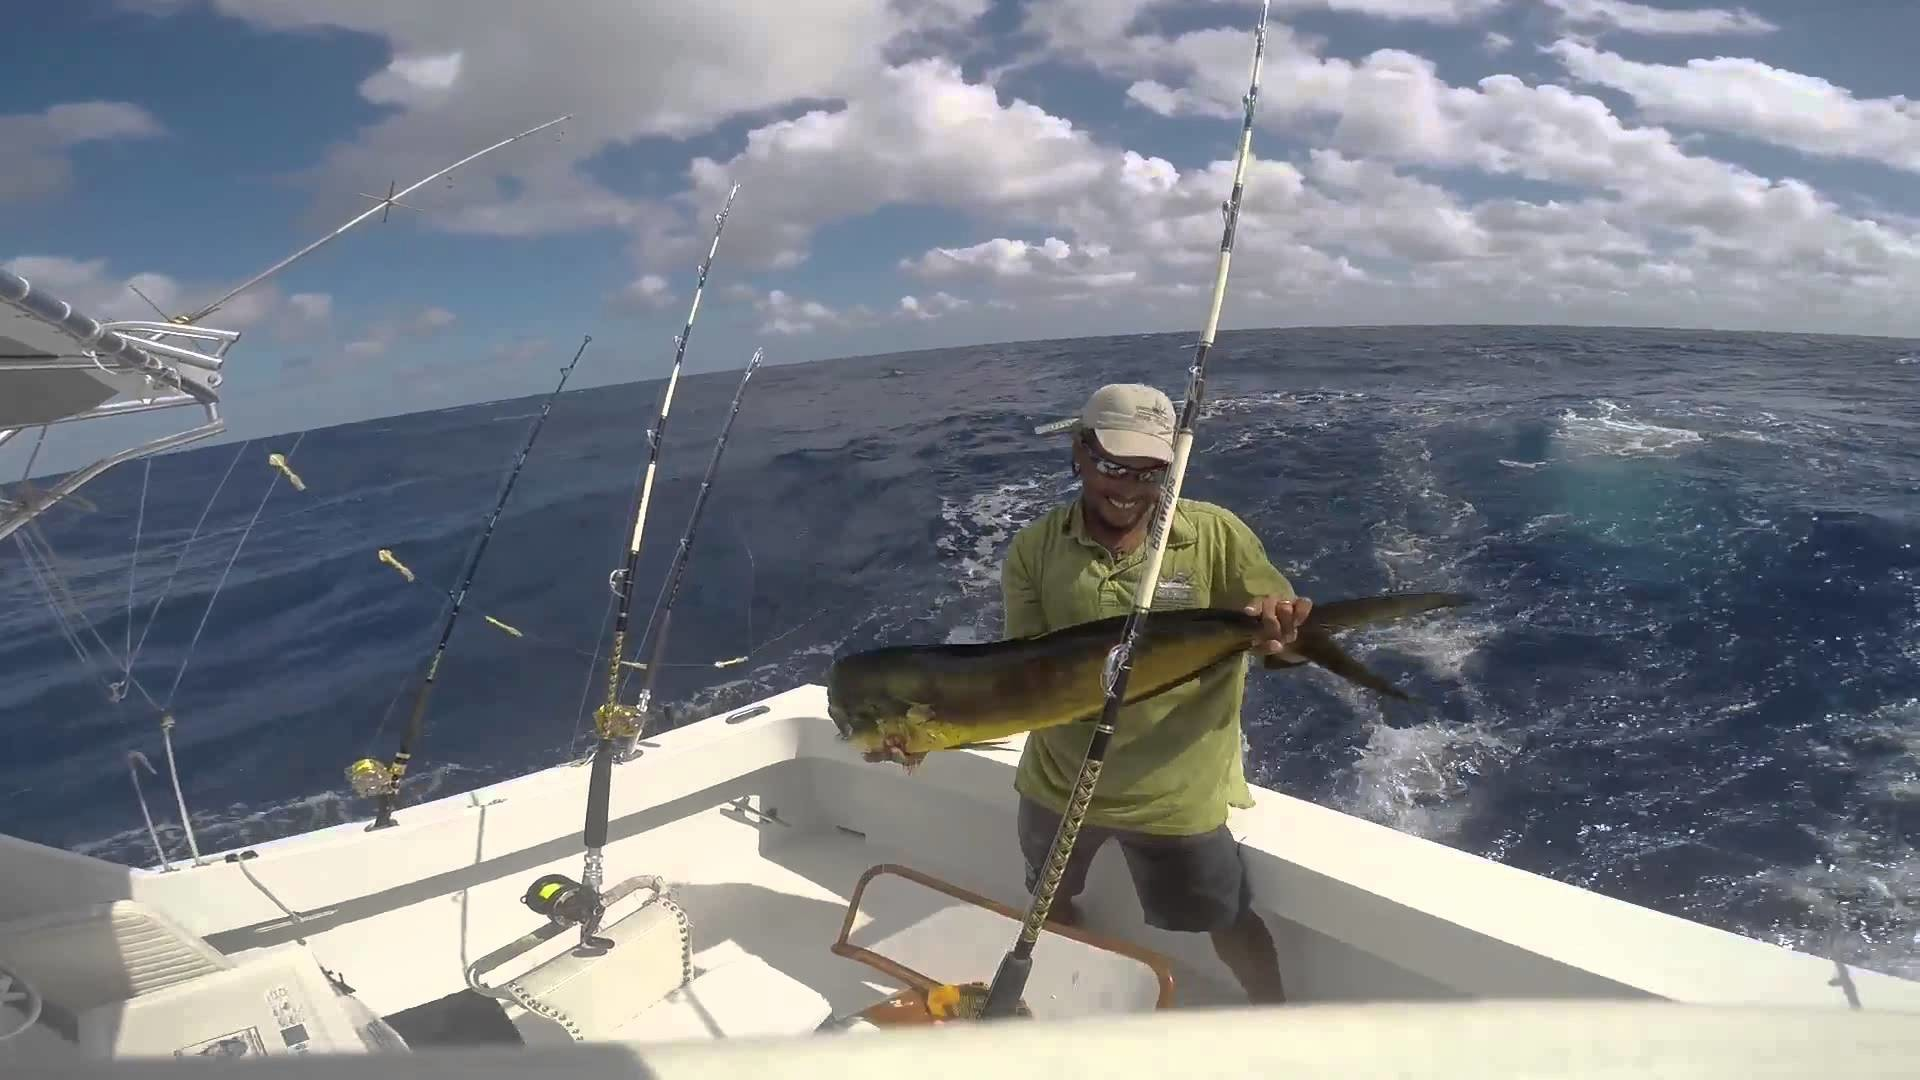 1920x1080 Offshore fishing in Puerto Rico